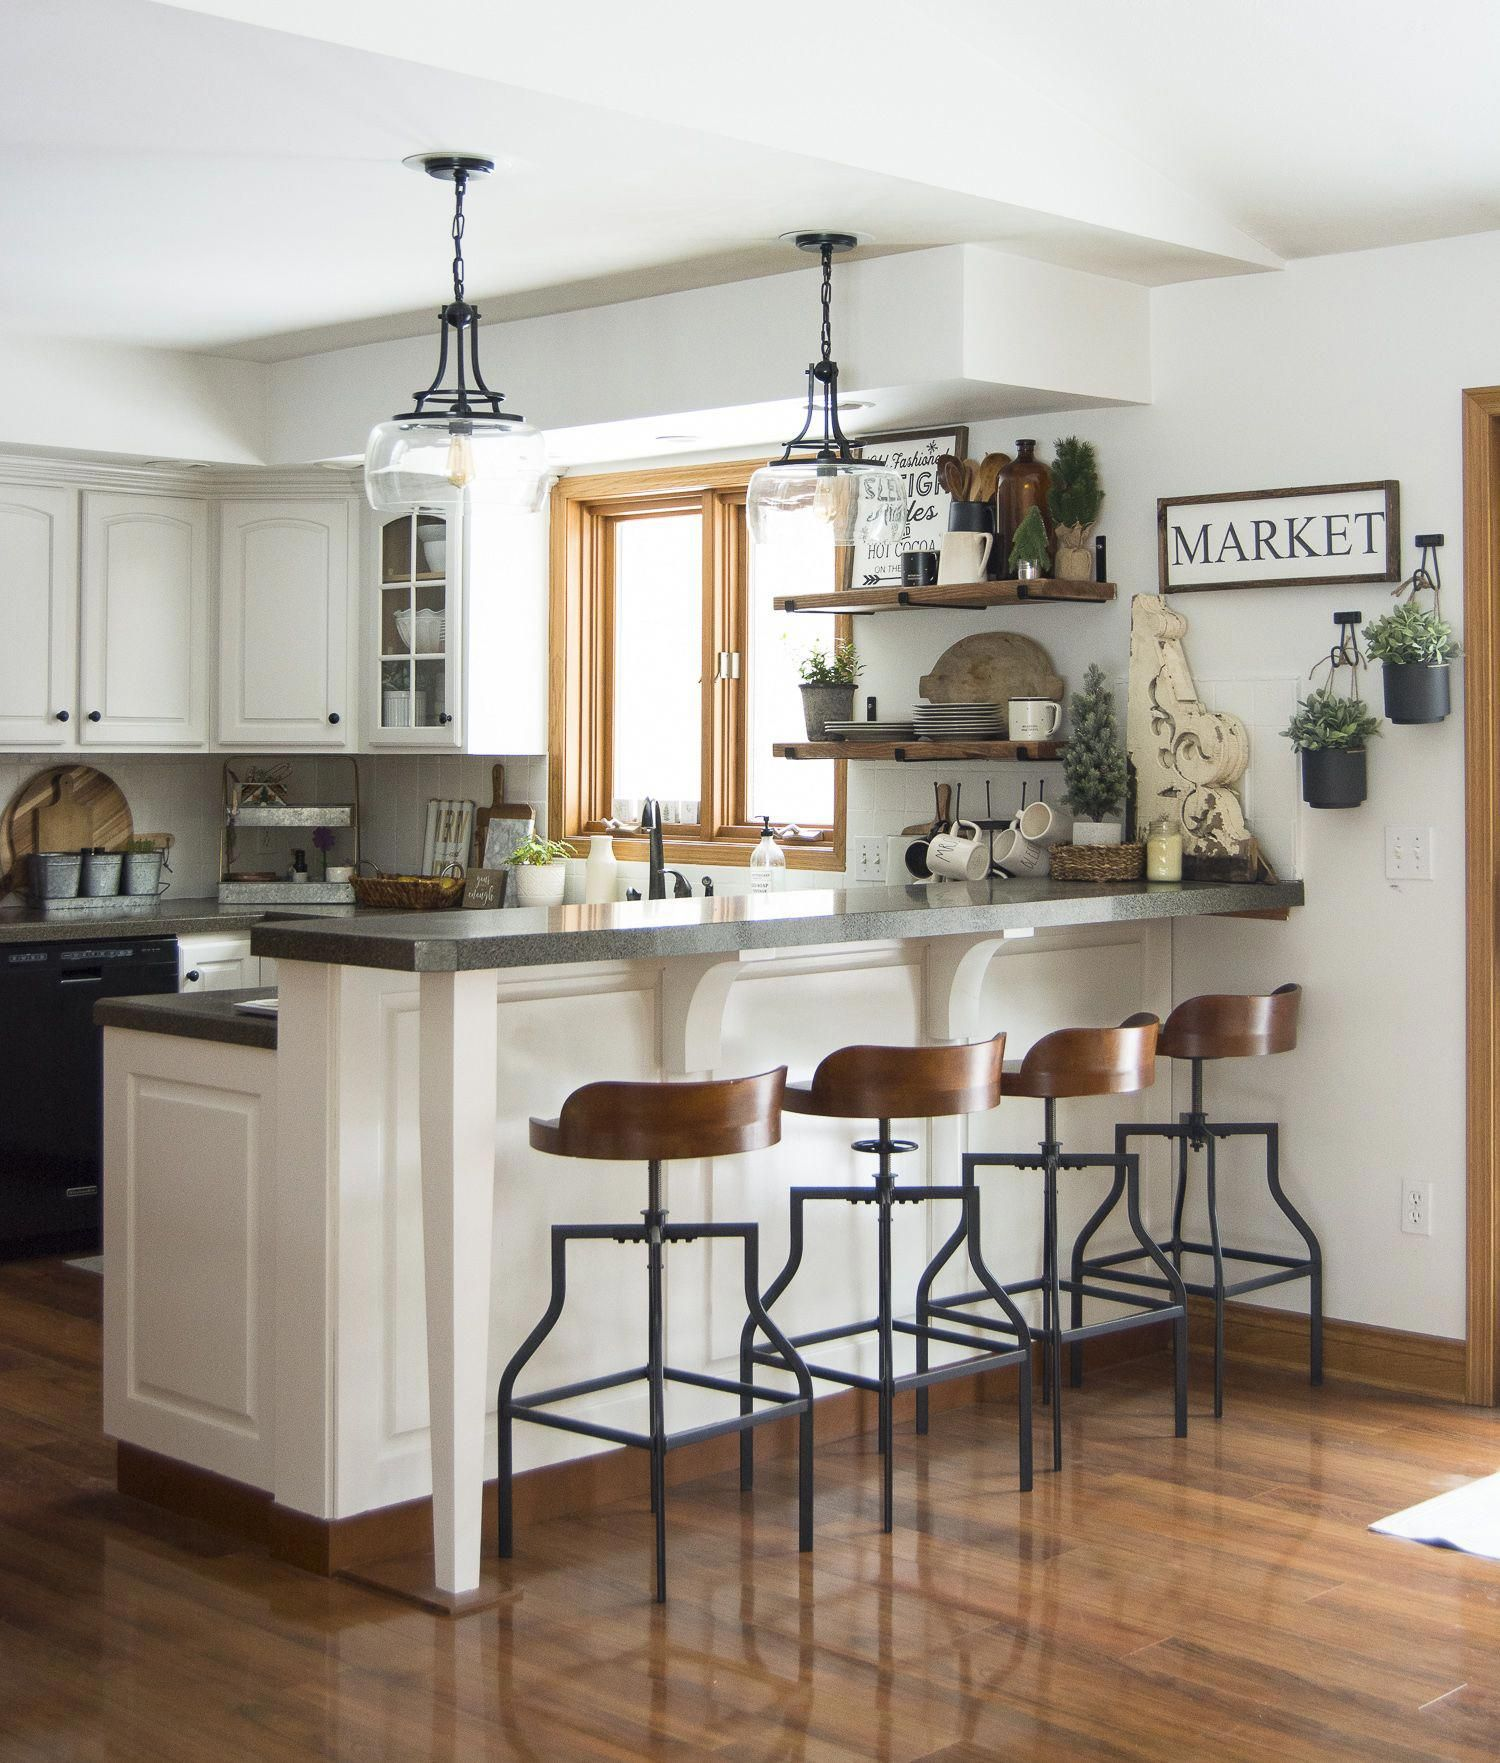 The Easiest Way To Renovate Your Kitchen: Do You Need Easy Ways To Add Christmas Decor To Your